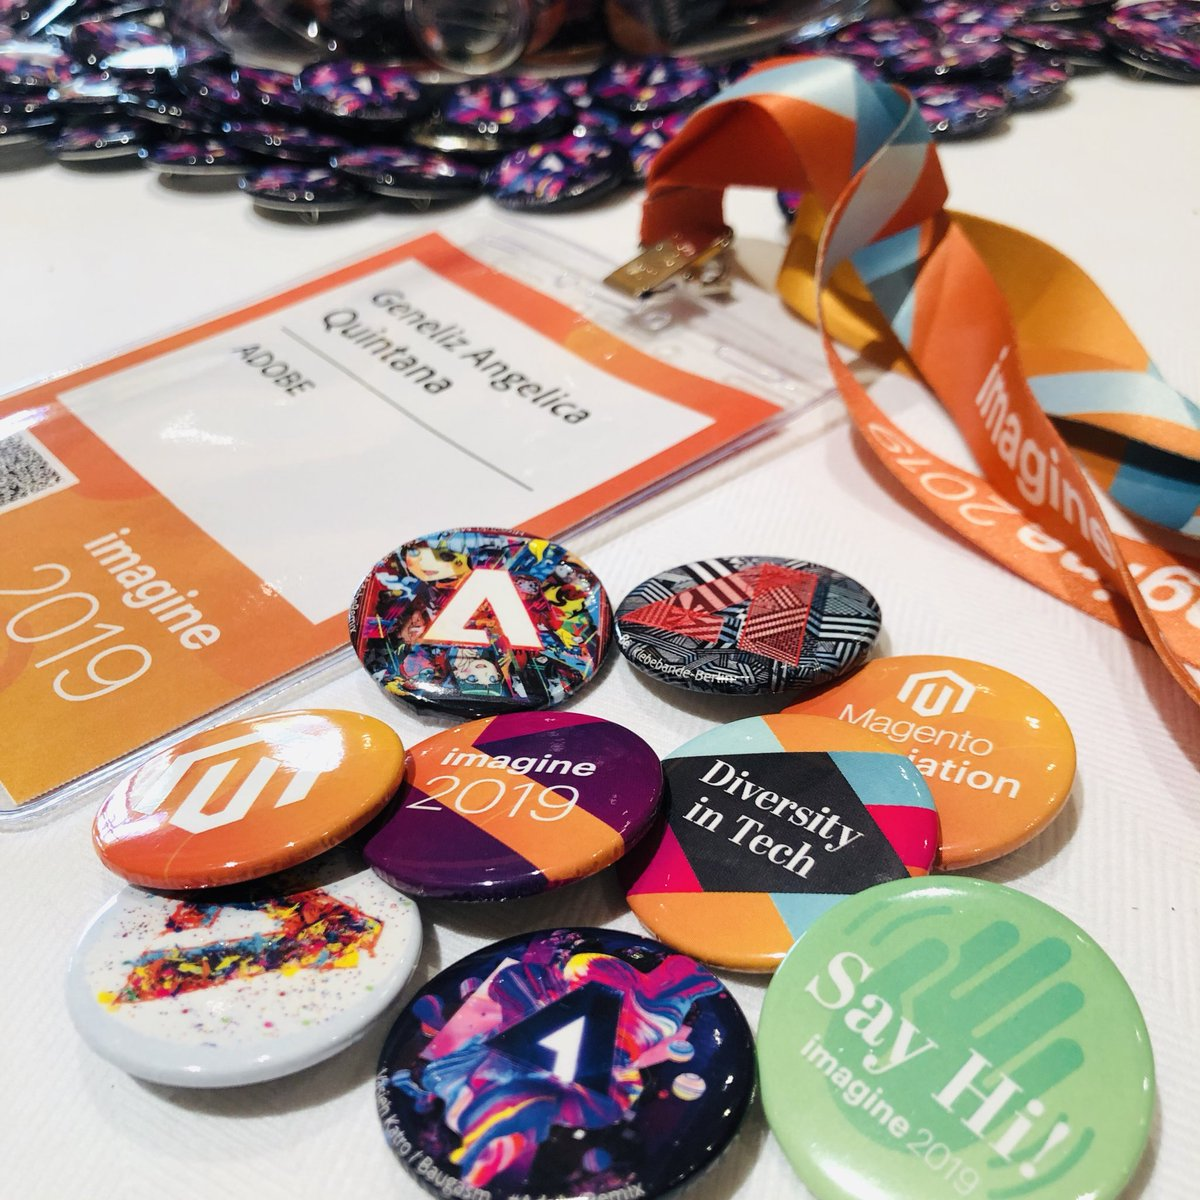 jenuhleez: Ready for my 3rd #MagentoImagine. Reg is now open! Come pick up your badge and buttons at Petrus! https://t.co/3hiNuZChjB